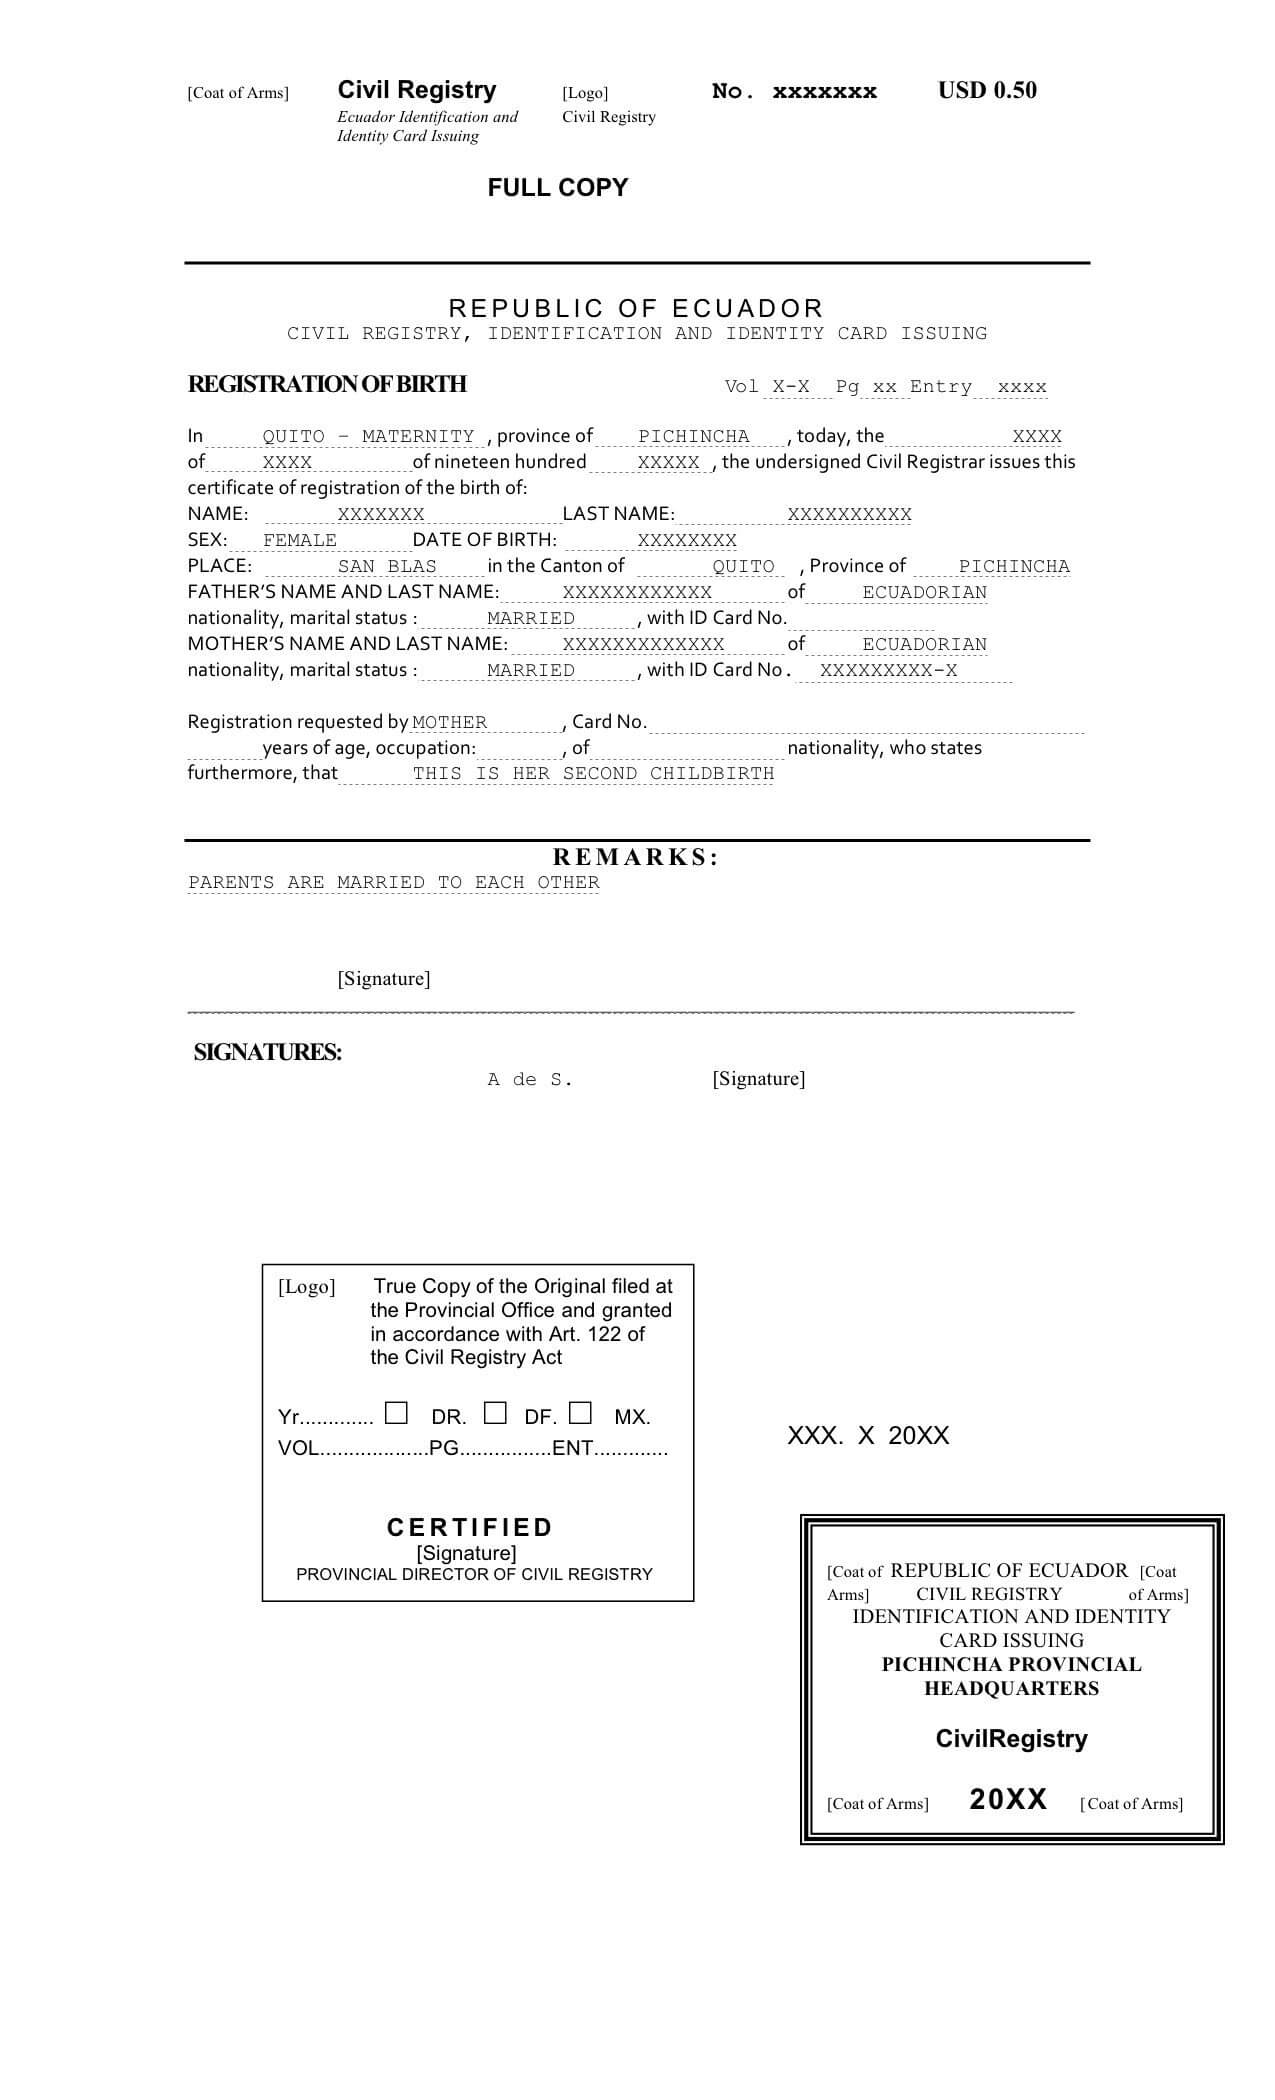 Death Certificate Translation From Spanish To English Sample within Marriage Certificate Translation From Spanish To English Template